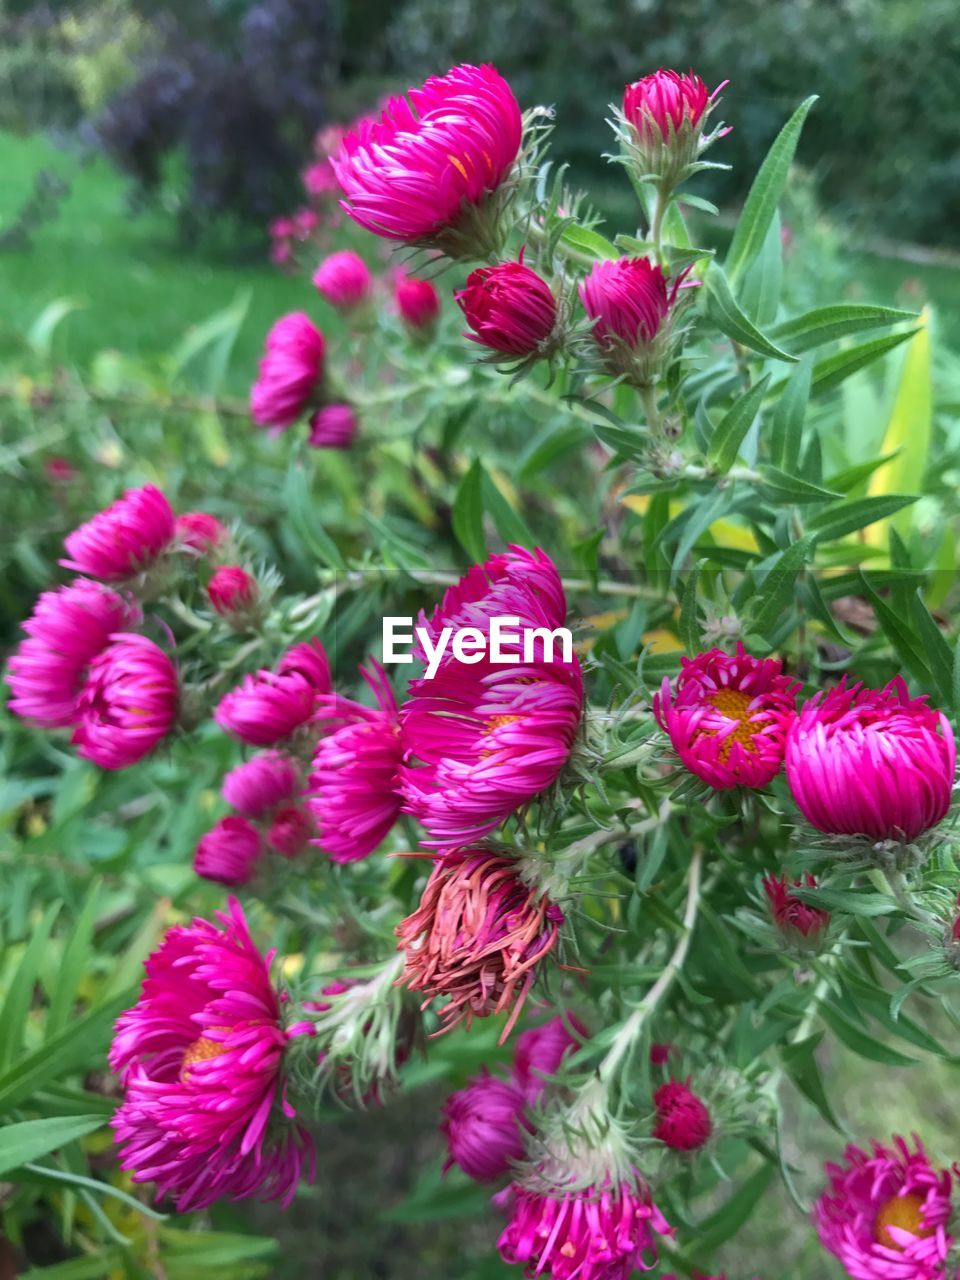 flower, growth, nature, beauty in nature, pink color, plant, green color, no people, freshness, fragility, outdoors, petal, flower head, day, close-up, red, blooming